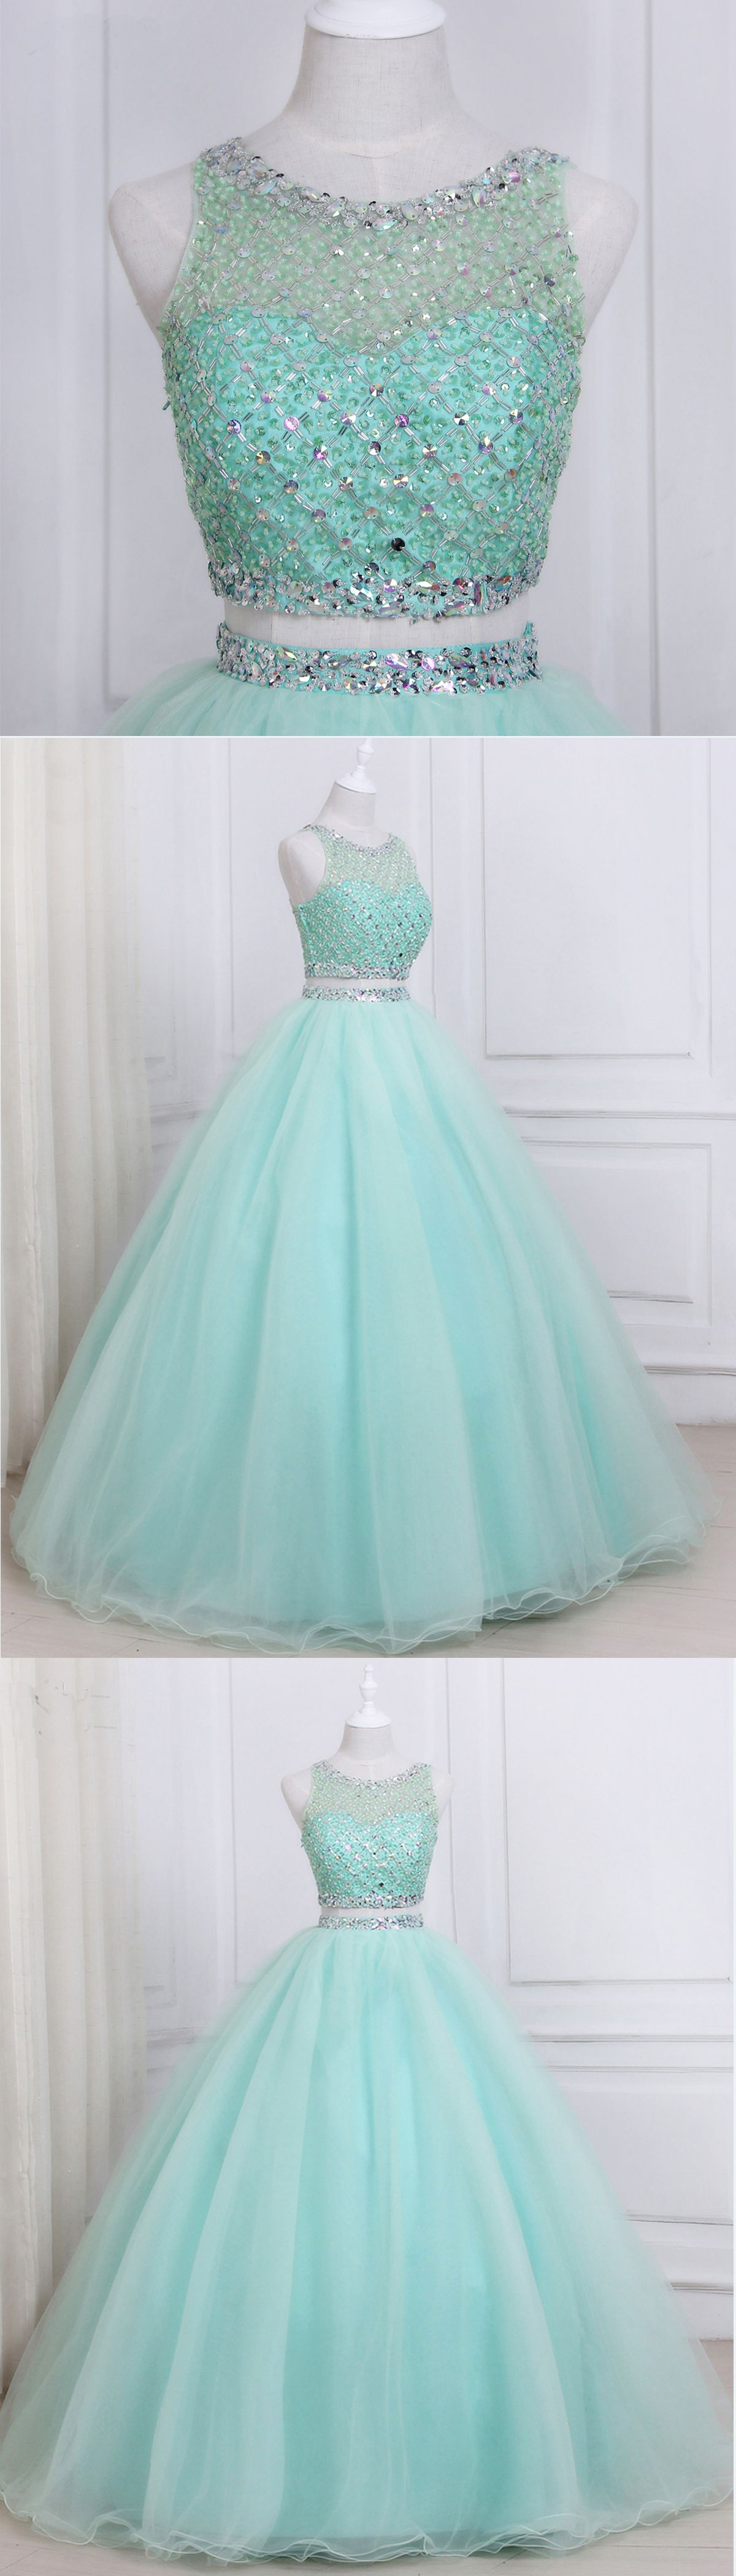 Stylish mint tulle two piece long homecoming dress long beaded